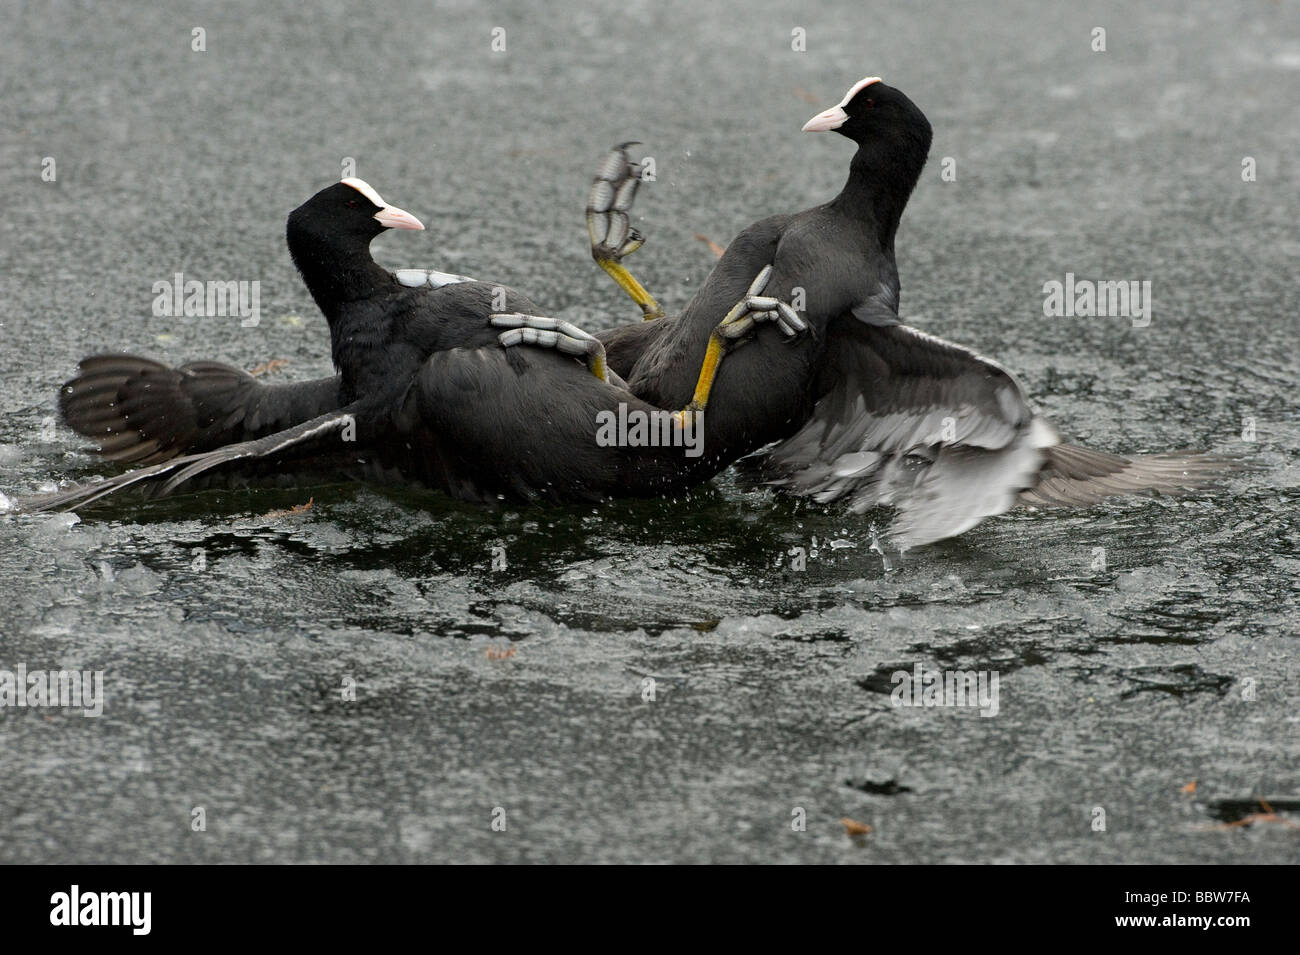 Coots Fulica atra fighting on ice Stock Photo